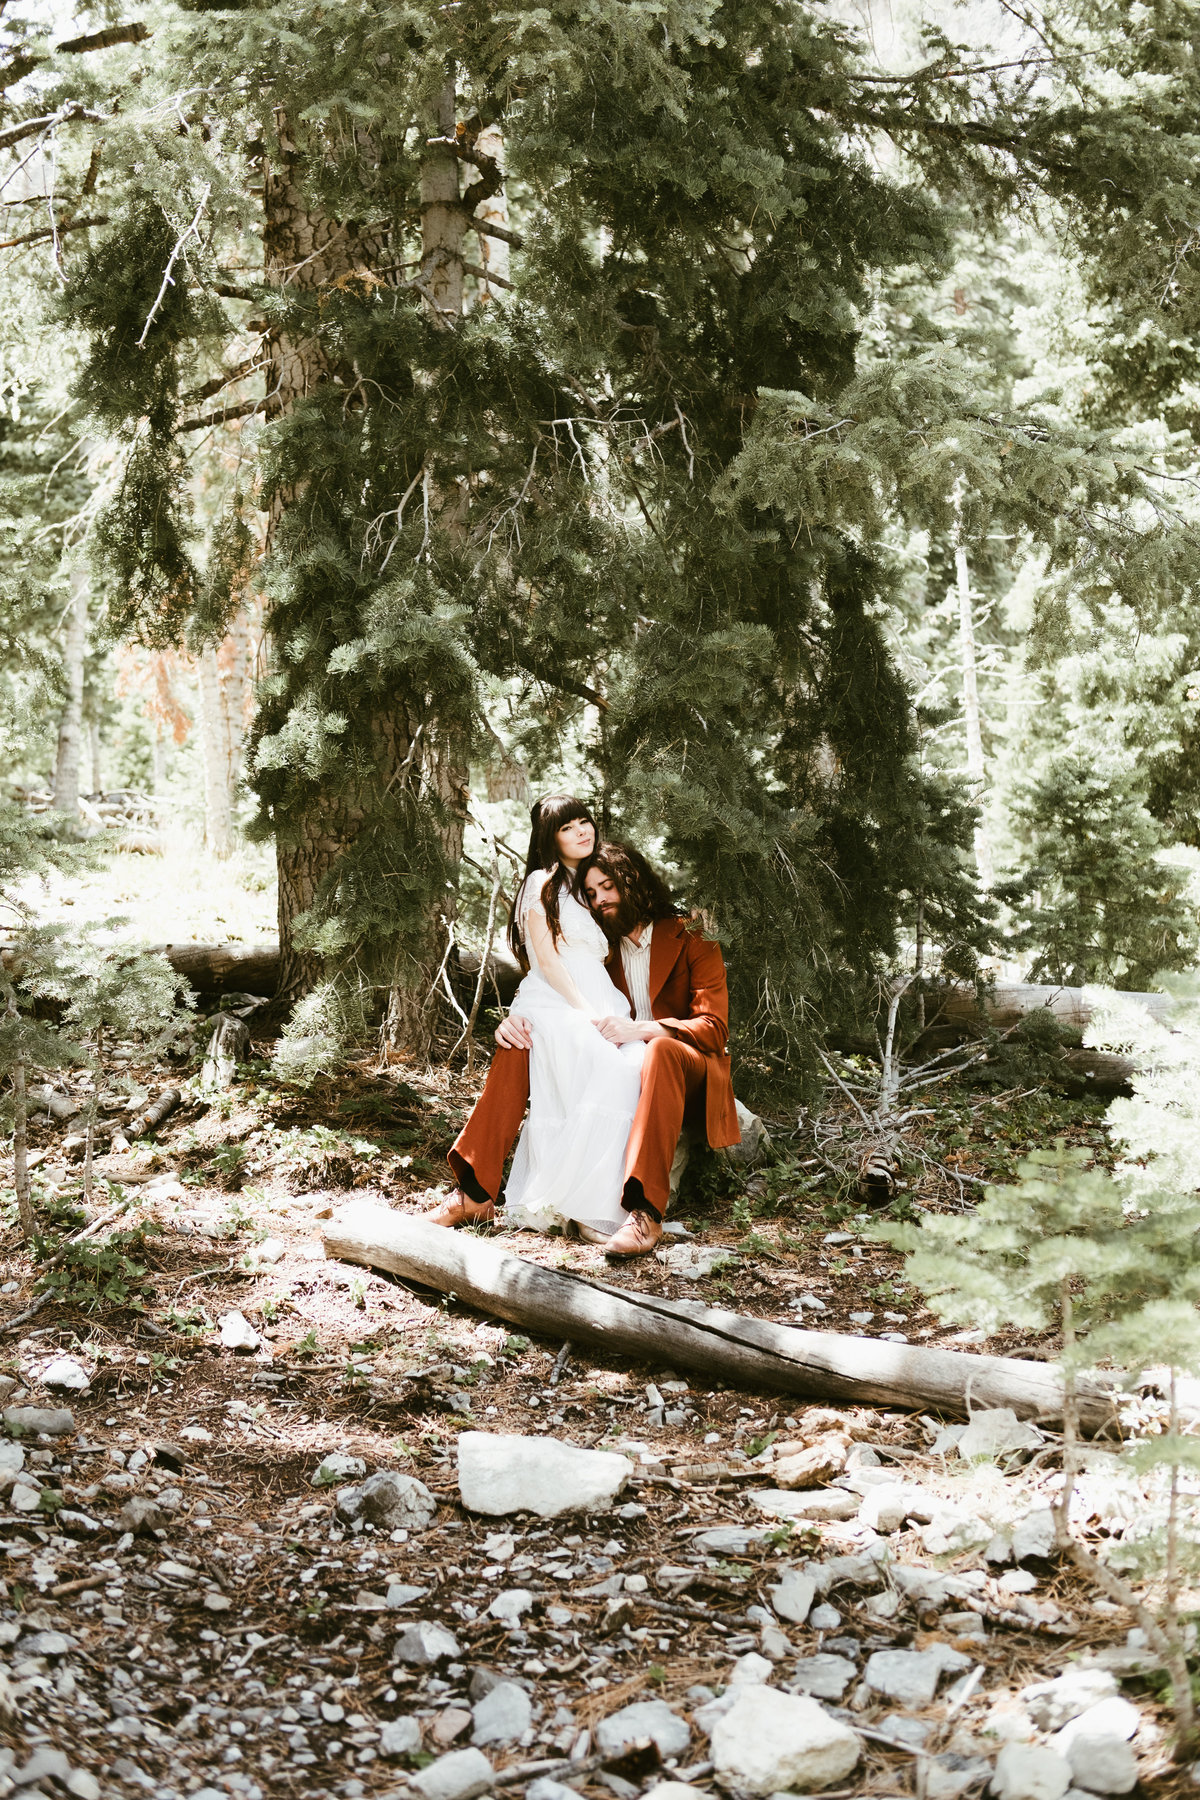 Mt.-Charleston-Engagement-Session-Best-Las-Vegas-Wedding-Photographer-5